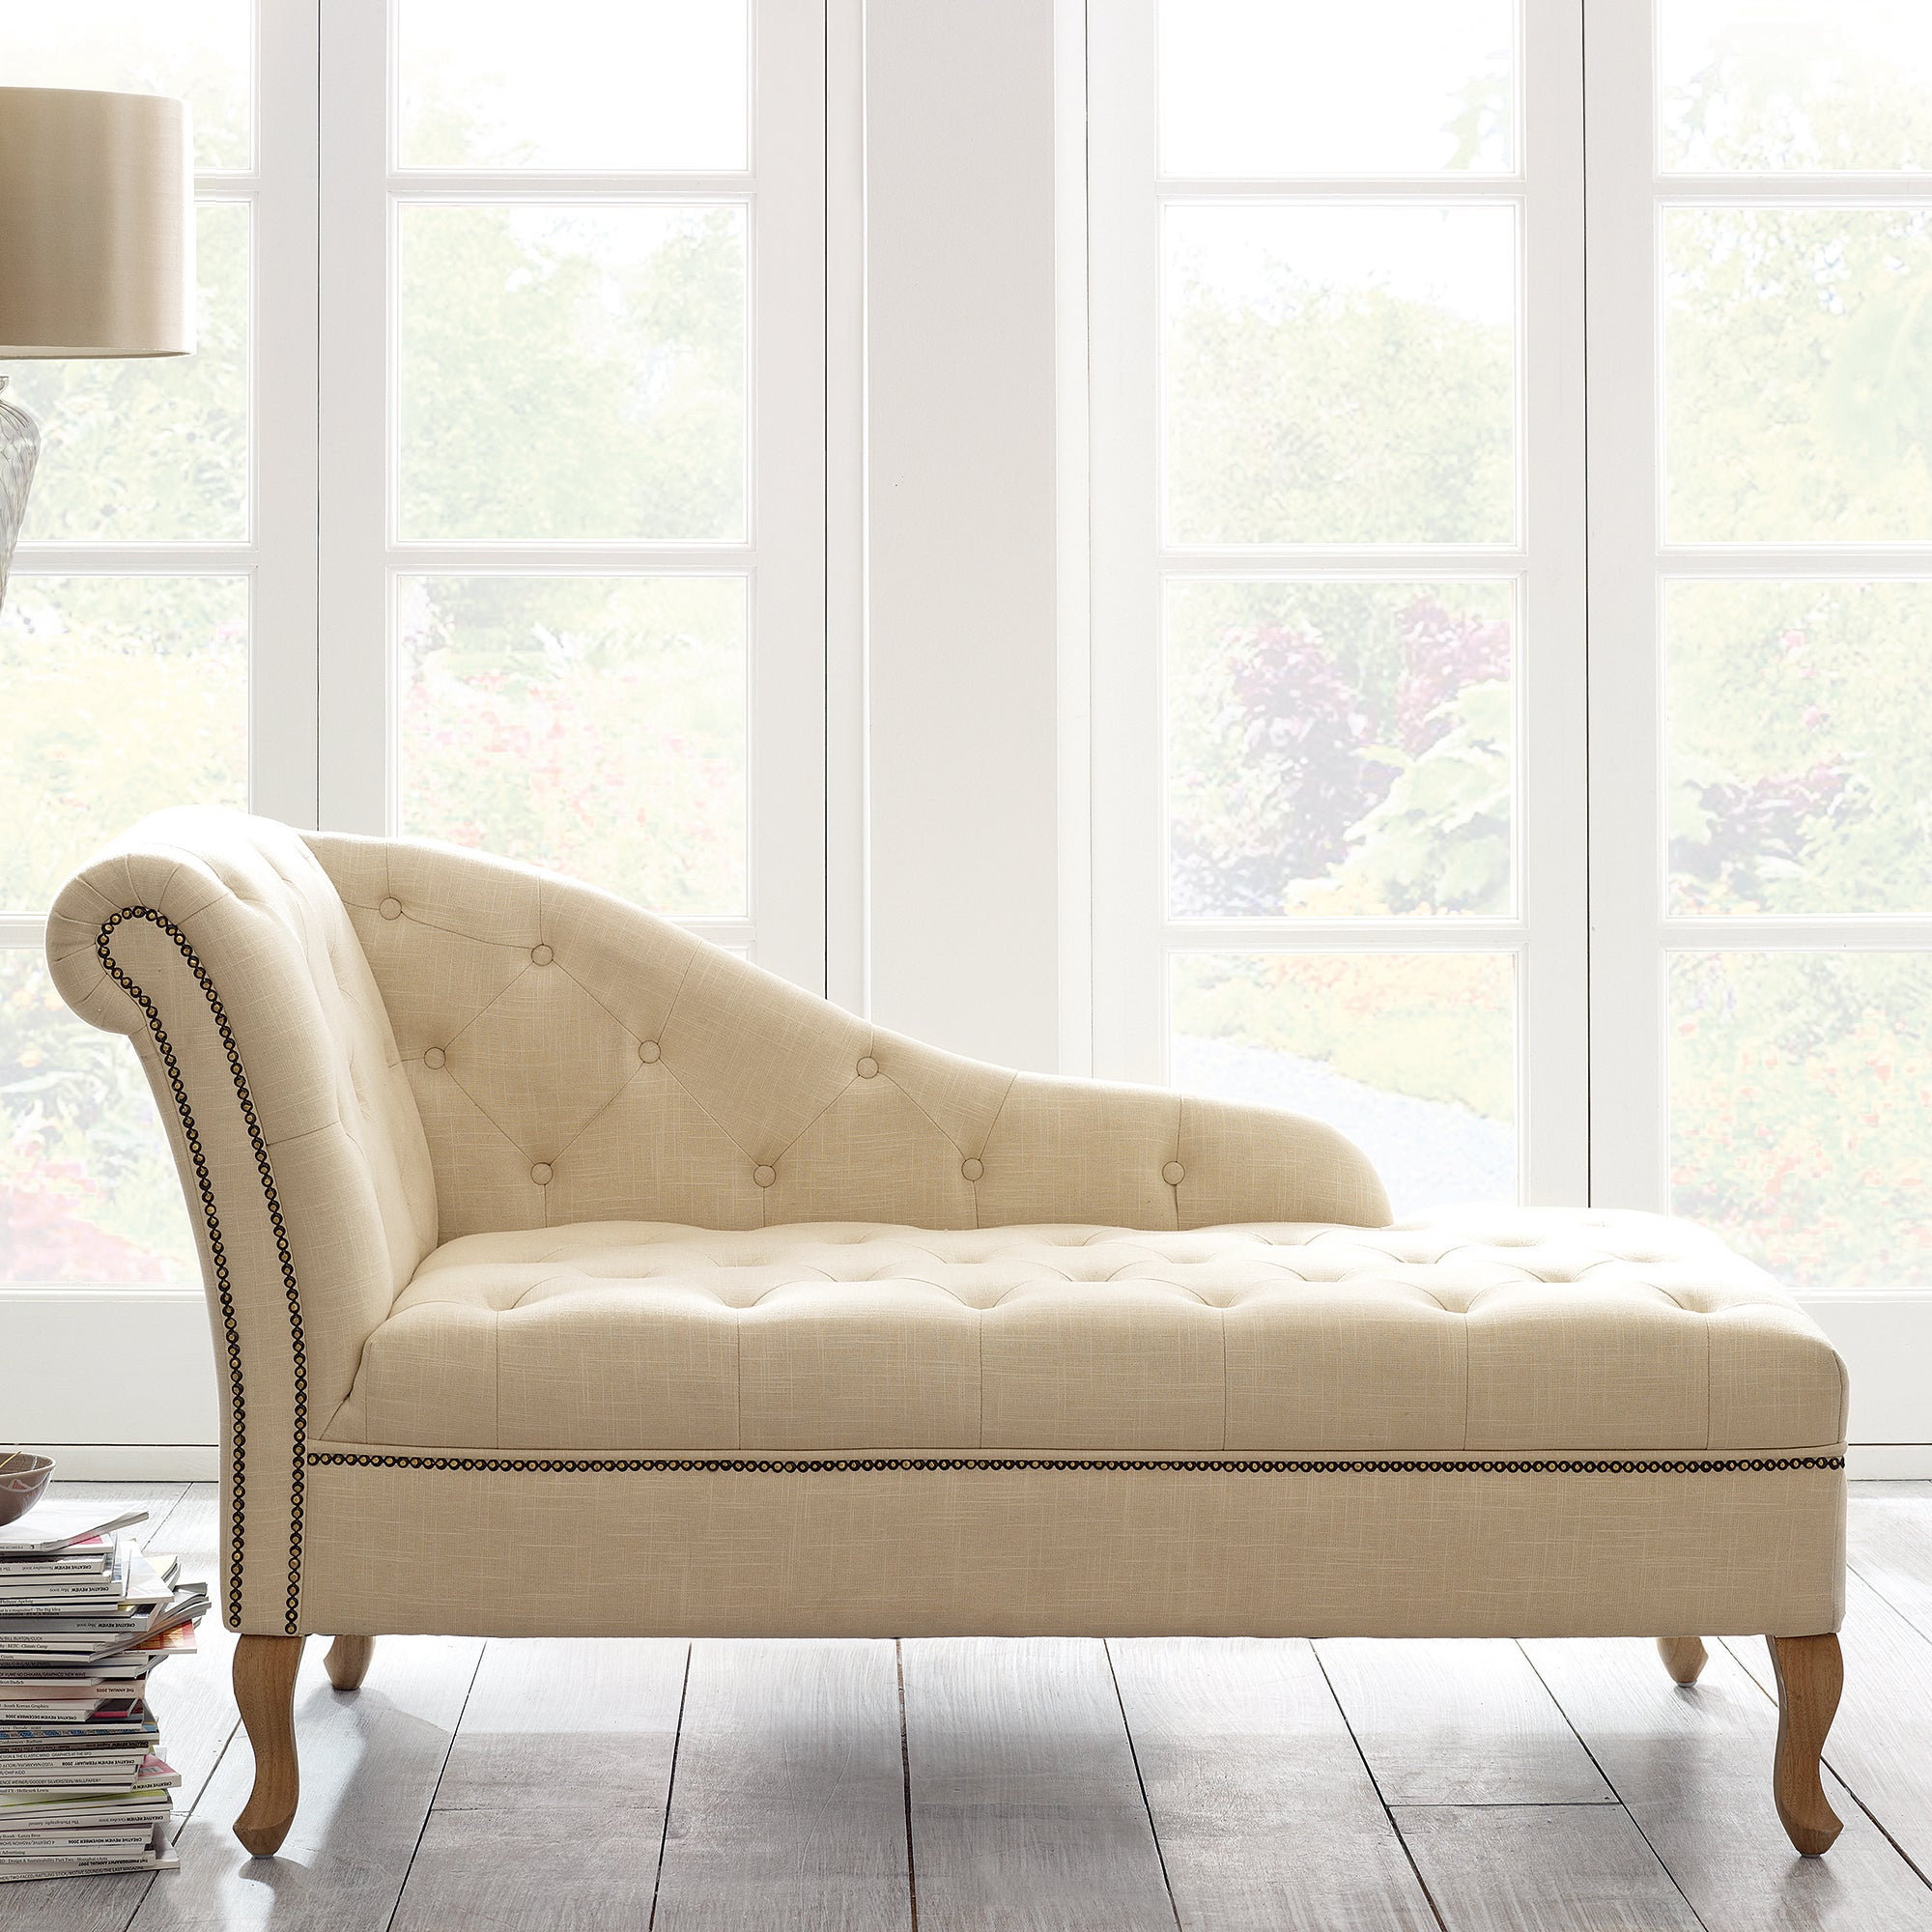 Cream Collette Chaise Longue